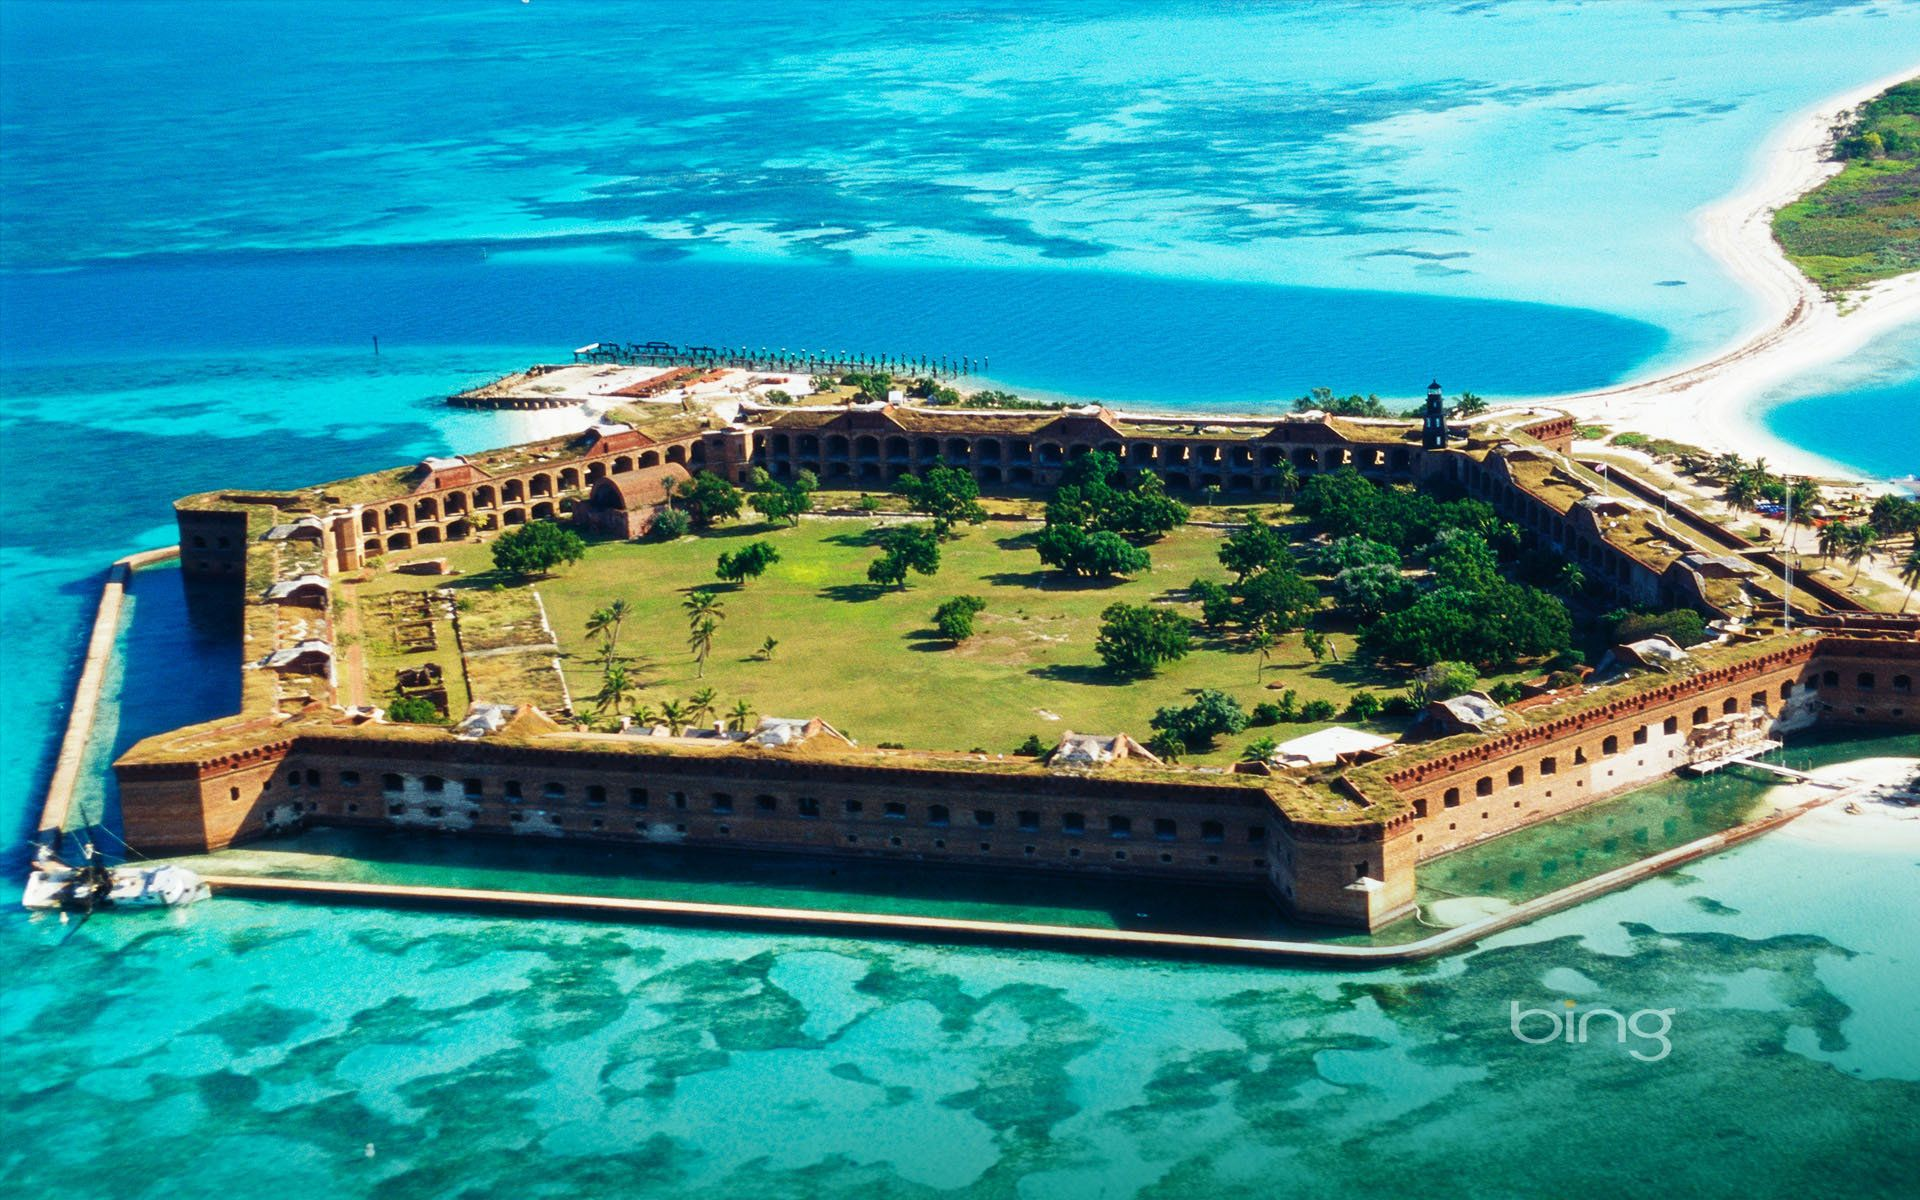 Bing Images As Desktop Background Be The Bing Desktop Wallpaper Free Downloads Will Be The Bing Dry Tortugas National Park National Monuments Favorite Places